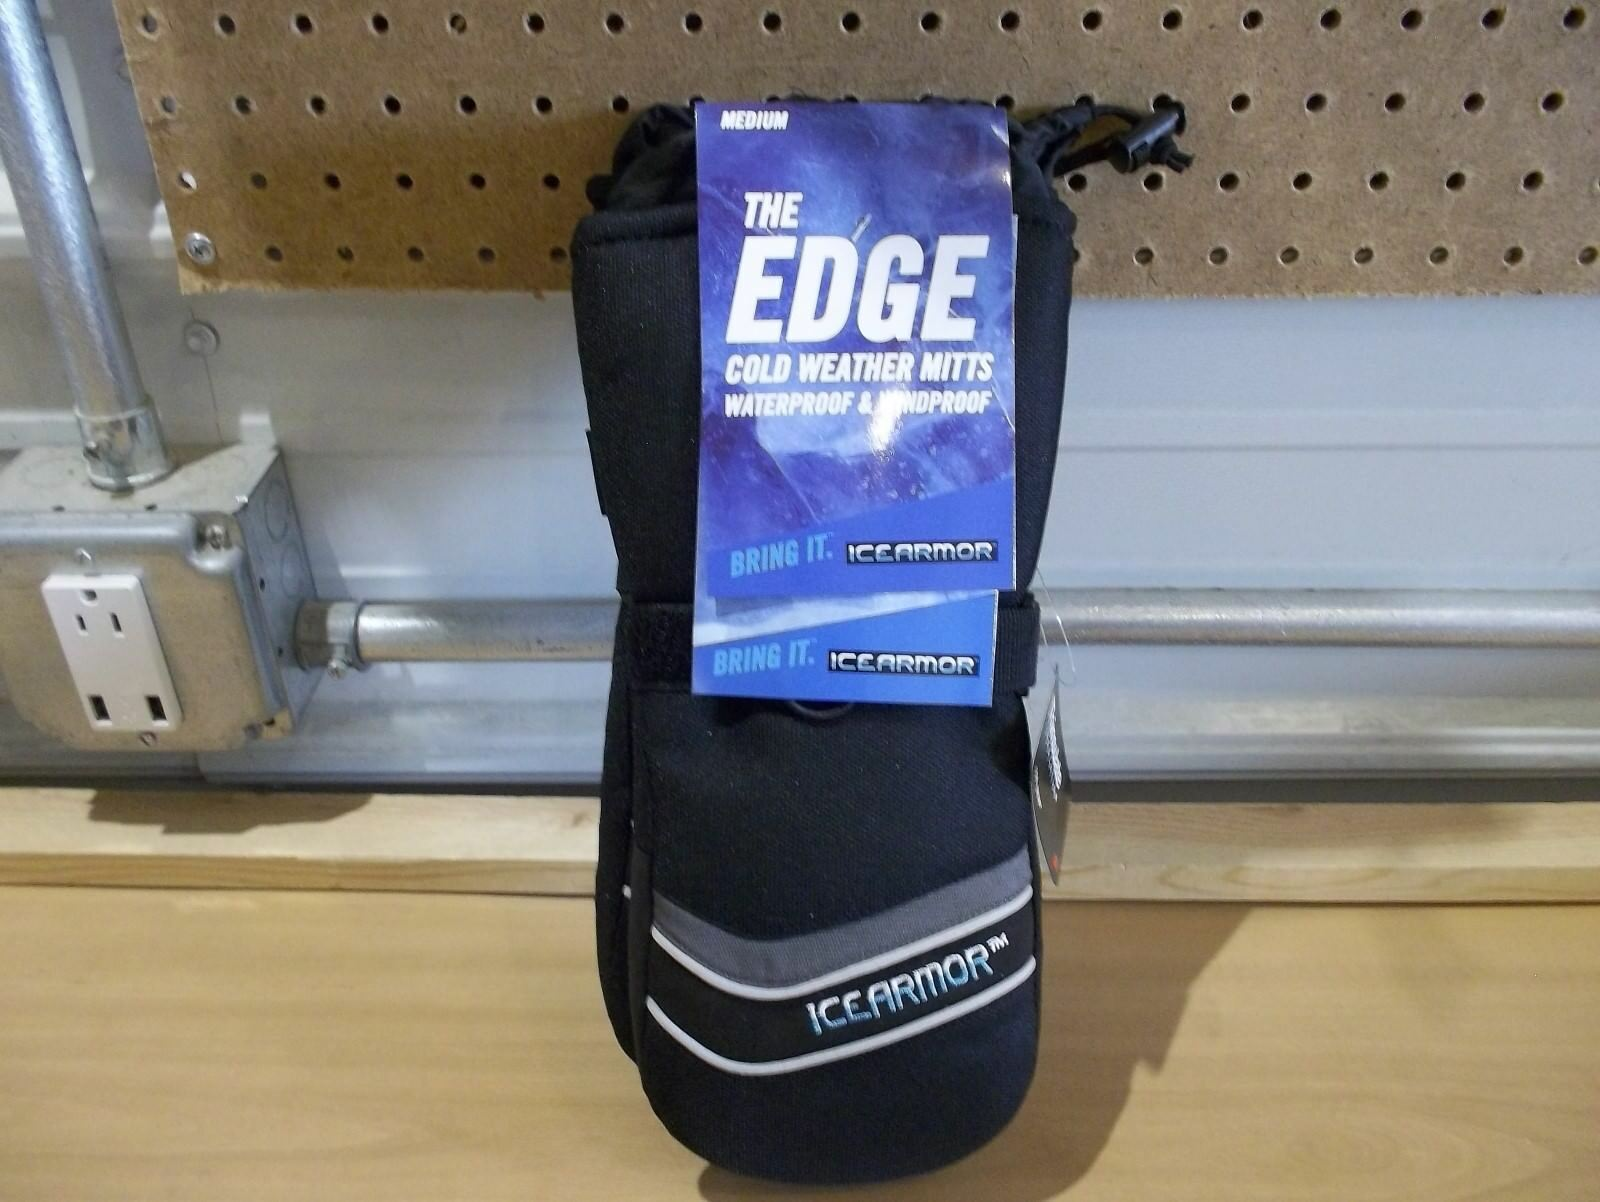 Clam Ice Armor Edge Cold Weather Mitts windproof waterproof  size Medium NWT  lightning delivery